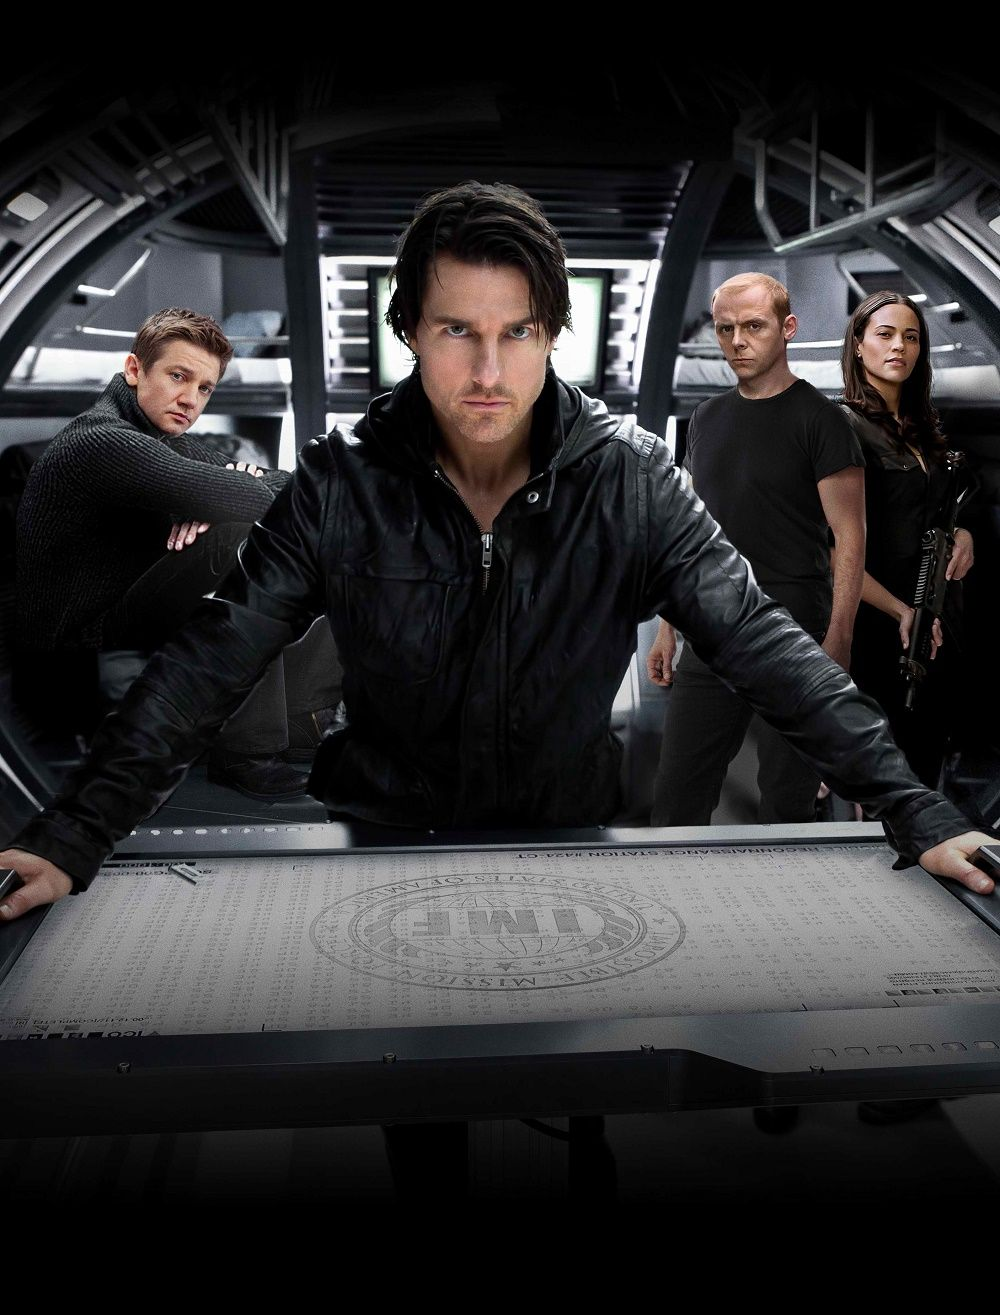 Mission Impossible Ghost Protocol Promotion Pic Tom Cruise Tom Cruise Mission Impossible Simon Pegg